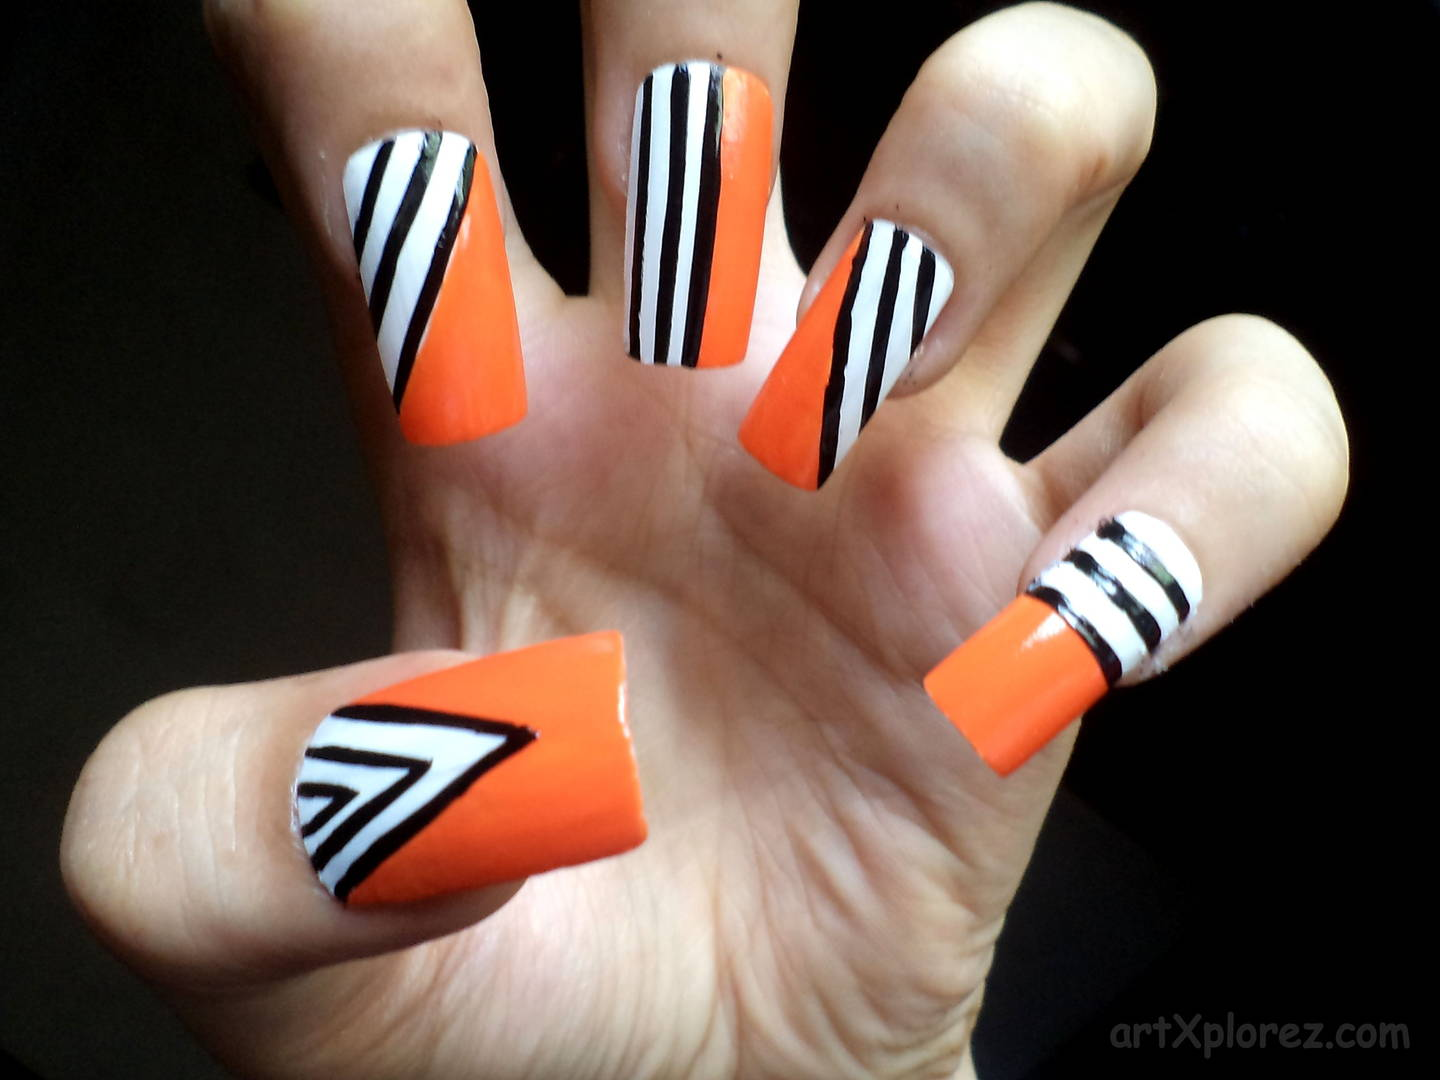 60 stylish orange and black nail art design ideas orange nails with black and white duo stripes nail art design prinsesfo Gallery